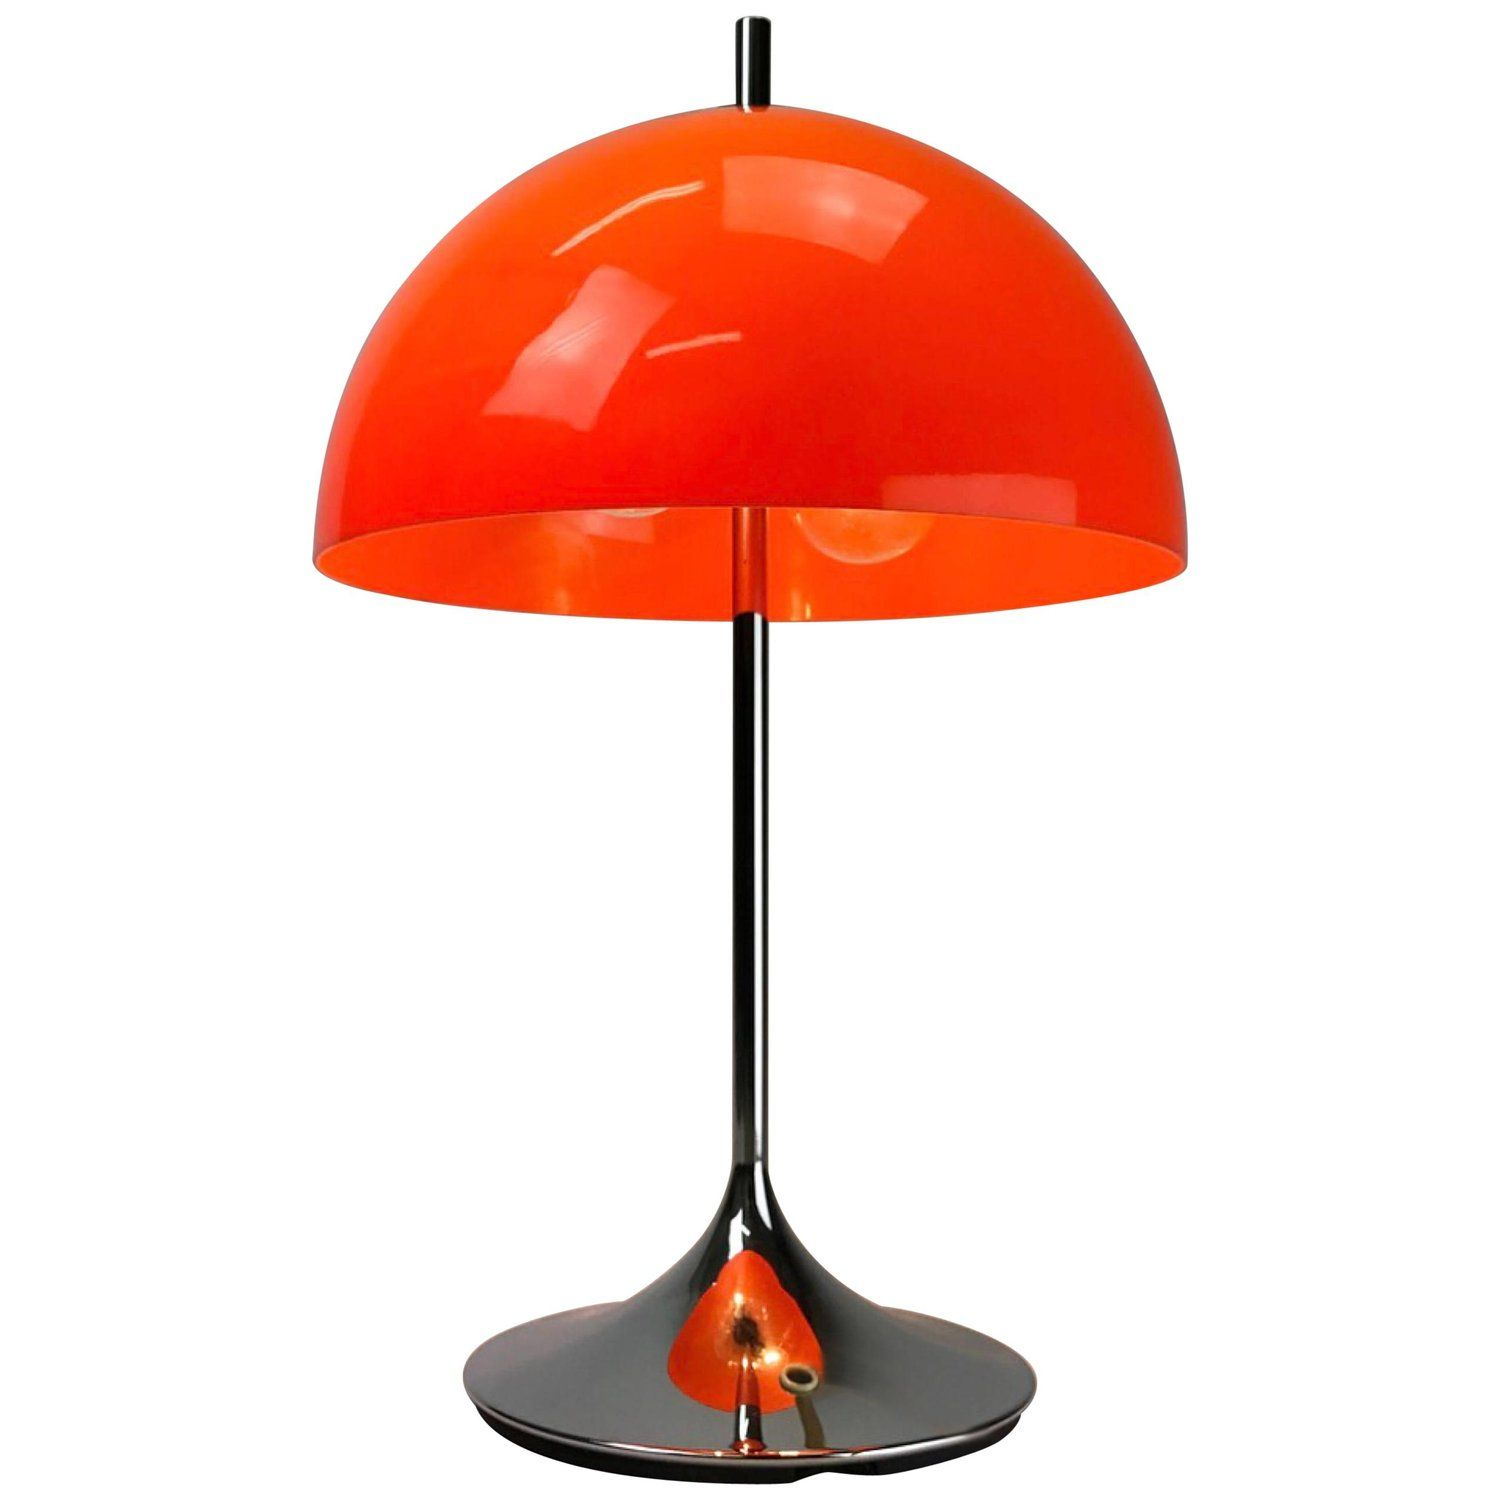 Beautiful German Space Age Table Lamp By Wila Table Lamp Lamp Desk Light